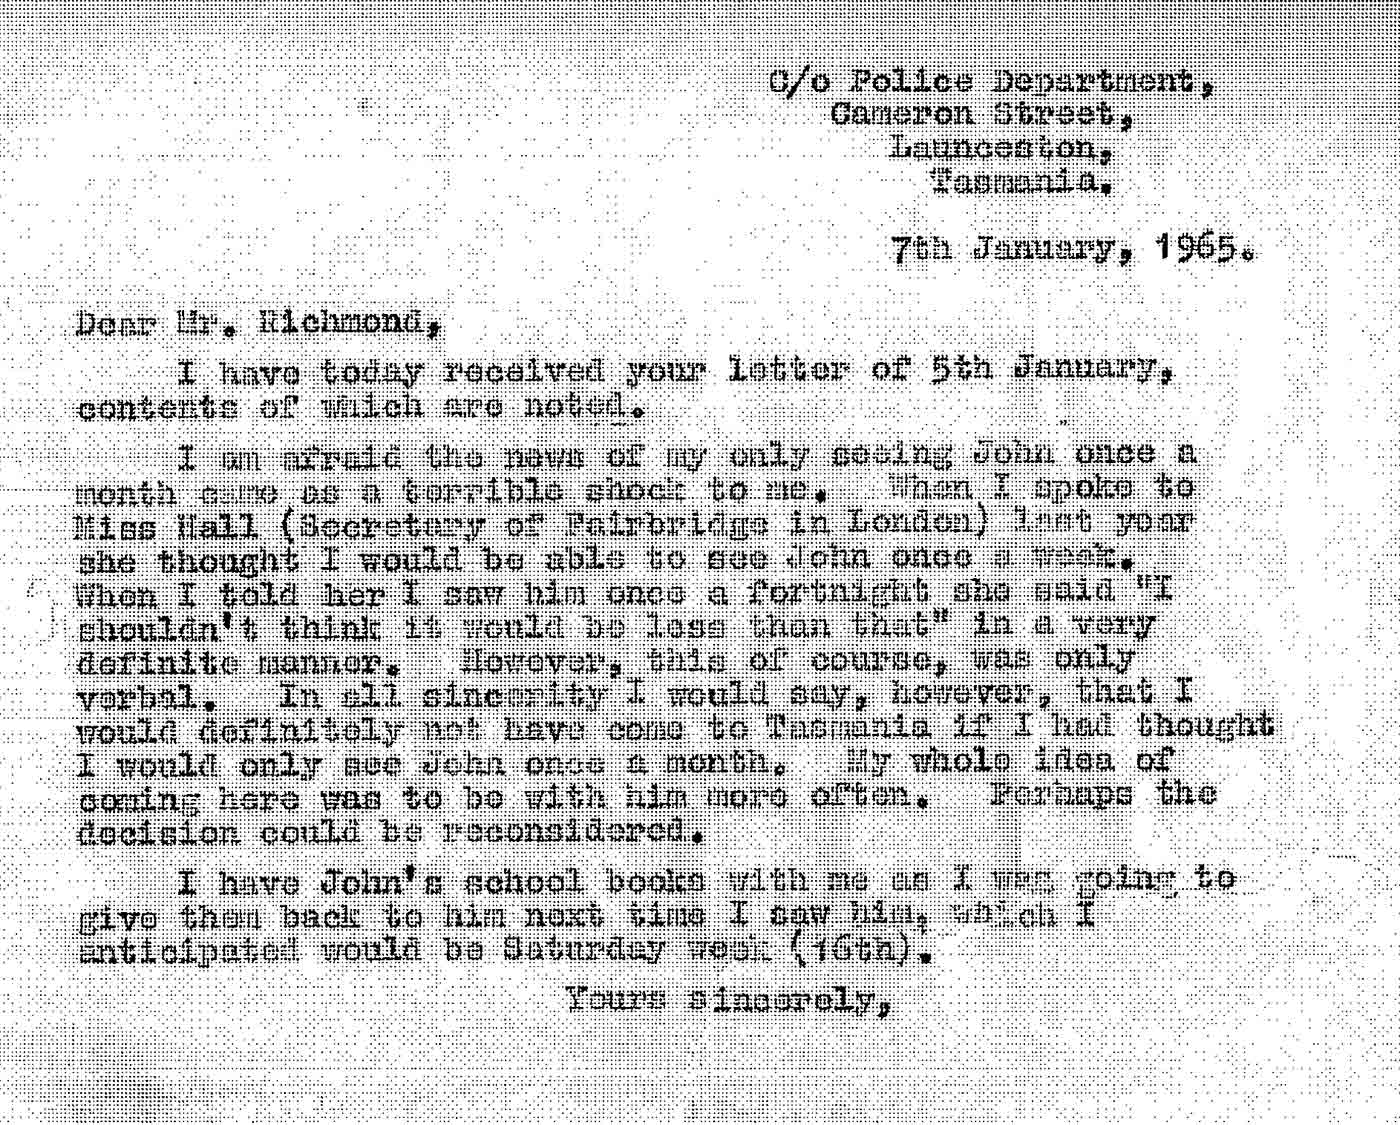 Copy of a typed letter to 'Mr Richmond, c/o Police Department, Cameron Street, Launceston, Tasmania' outling the writer's 'terrible shock' at the news of only being able to see her son once a month, after being told she should be able to see him once a week. - click to view larger image